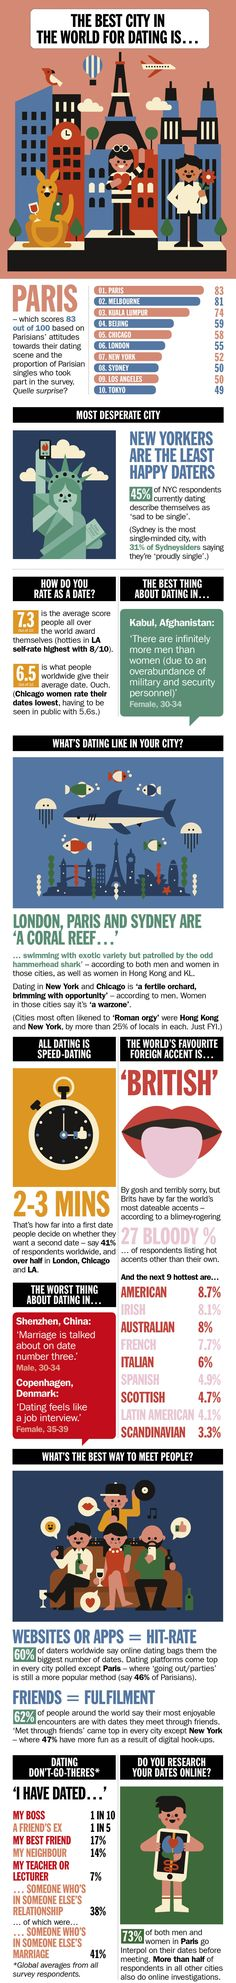 From sexy accents to first date no-nos, find out how single people across the planet like to date with Time Out's Global Dating Survey 2015